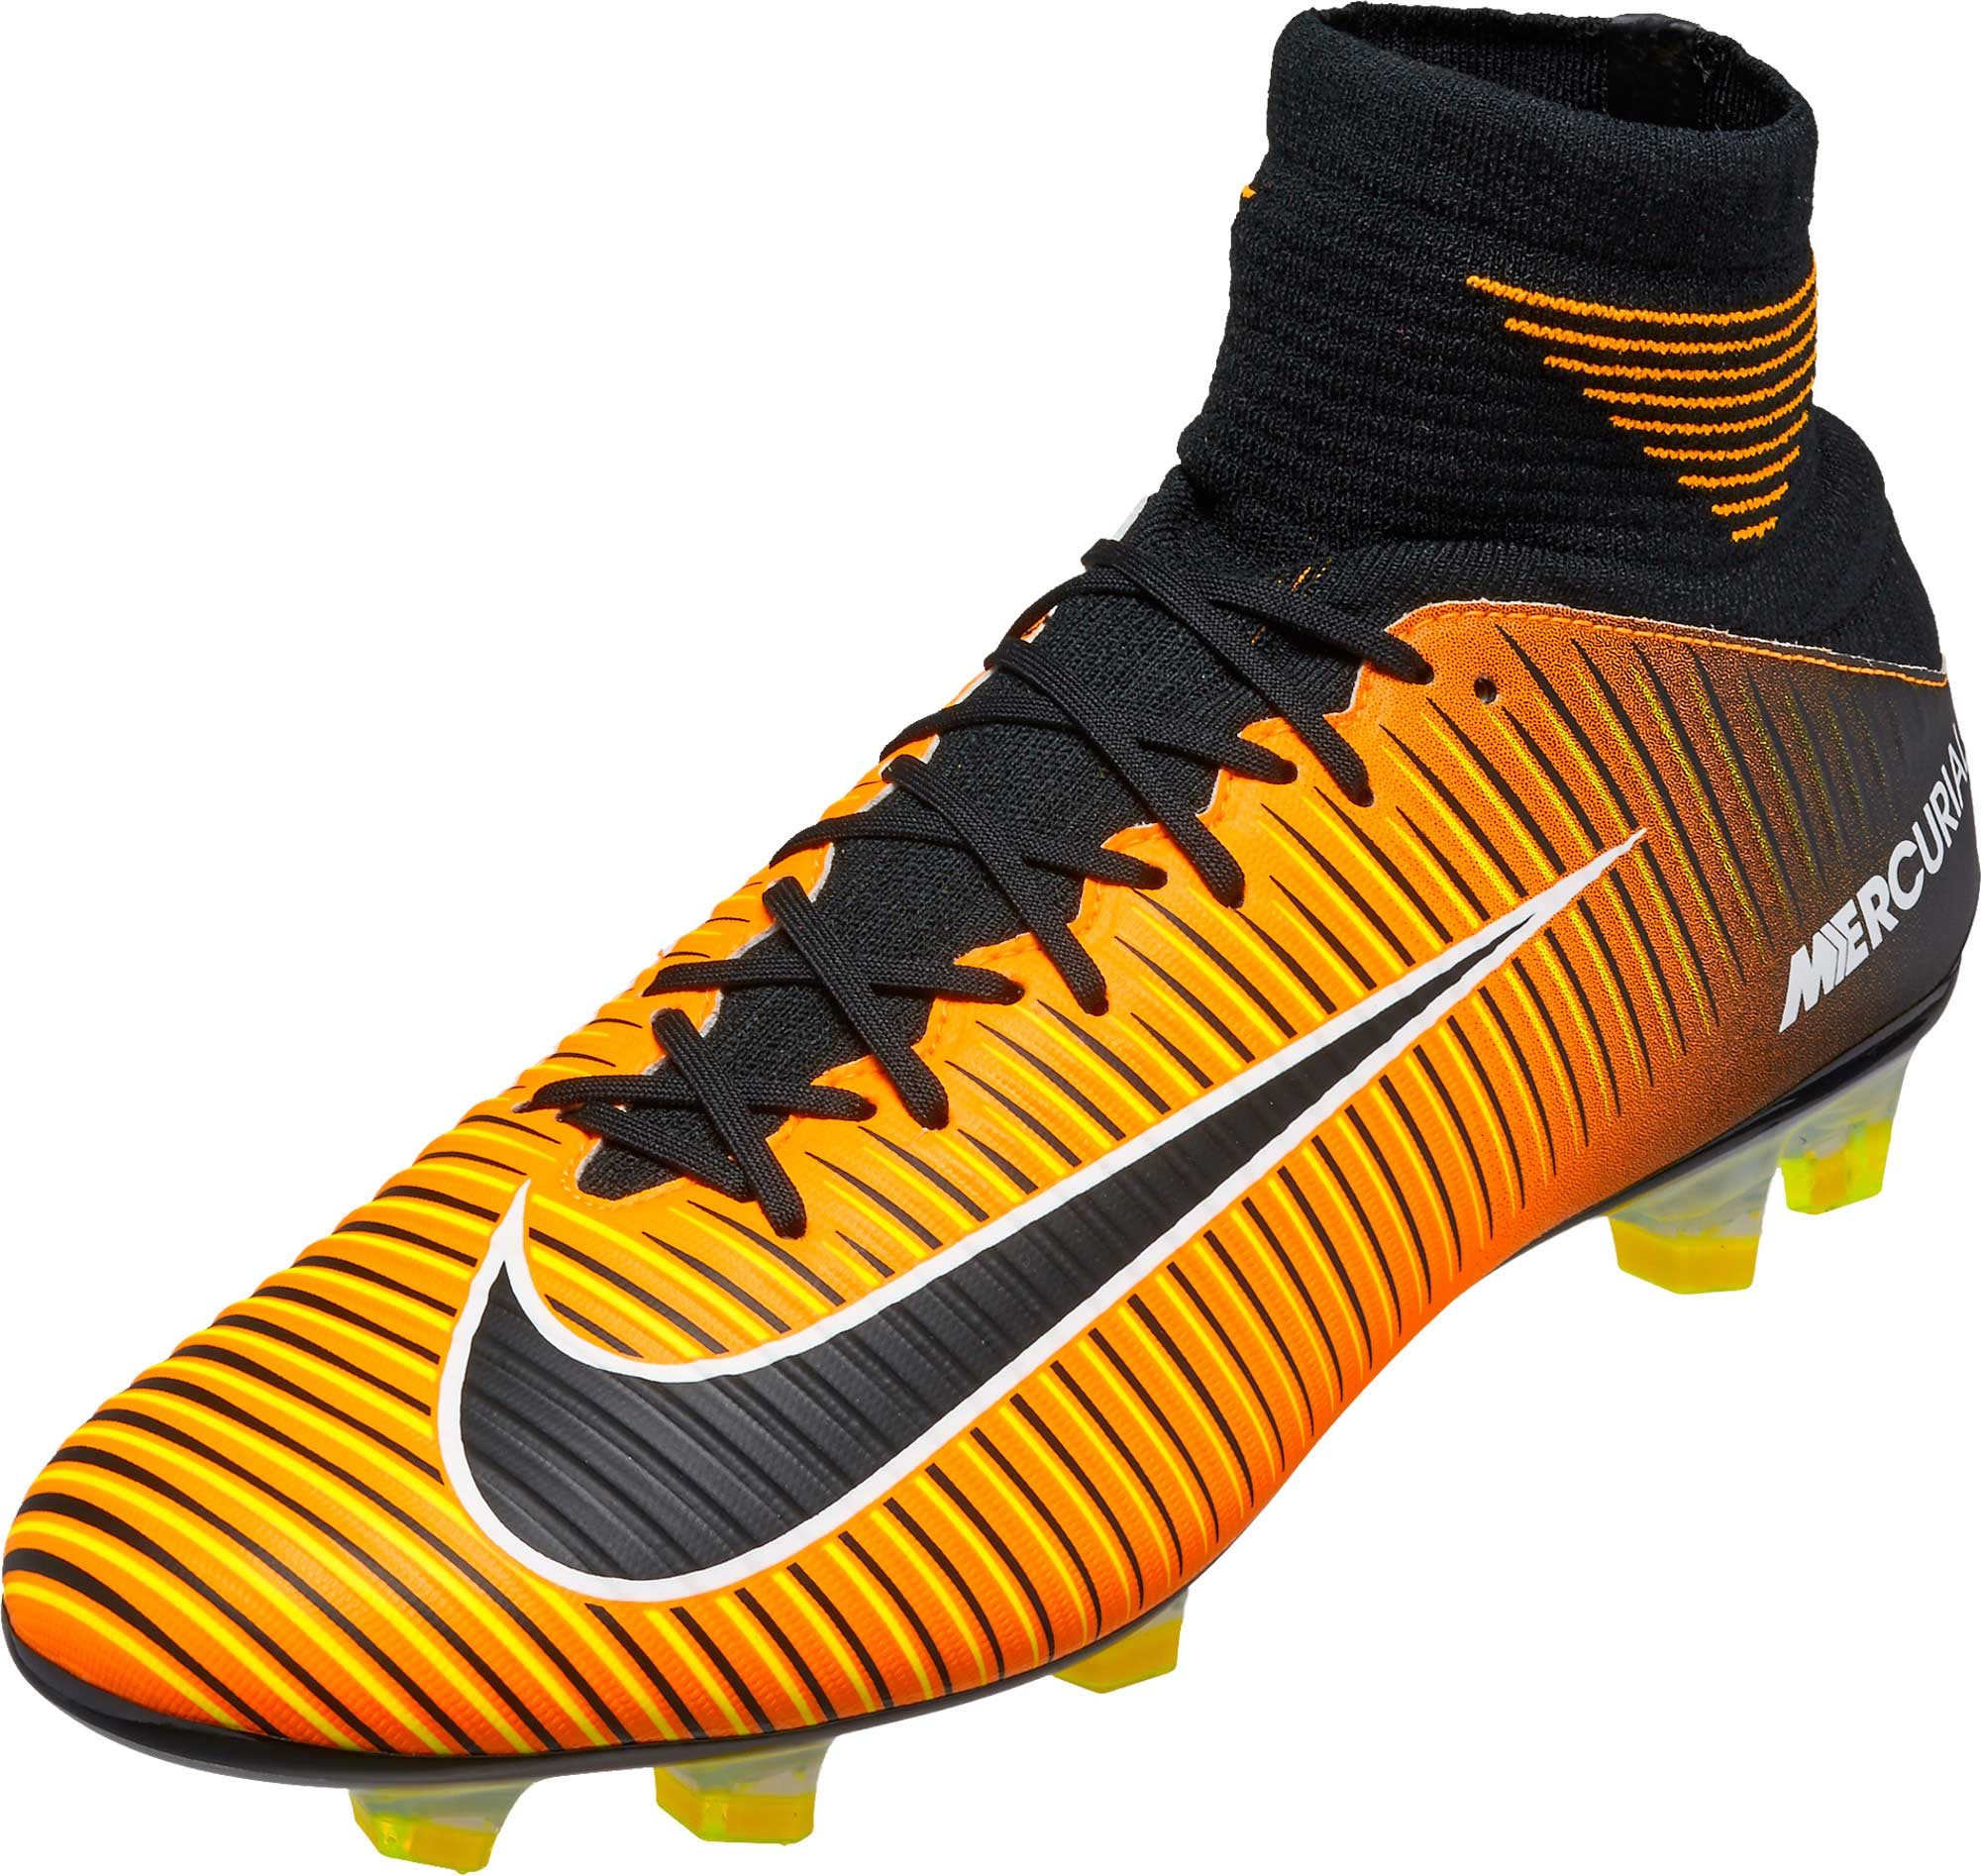 0252c0b8846864 Nike Mercurial Veloce III DF FG Soccer Cleats - Laser Orange   Black ...